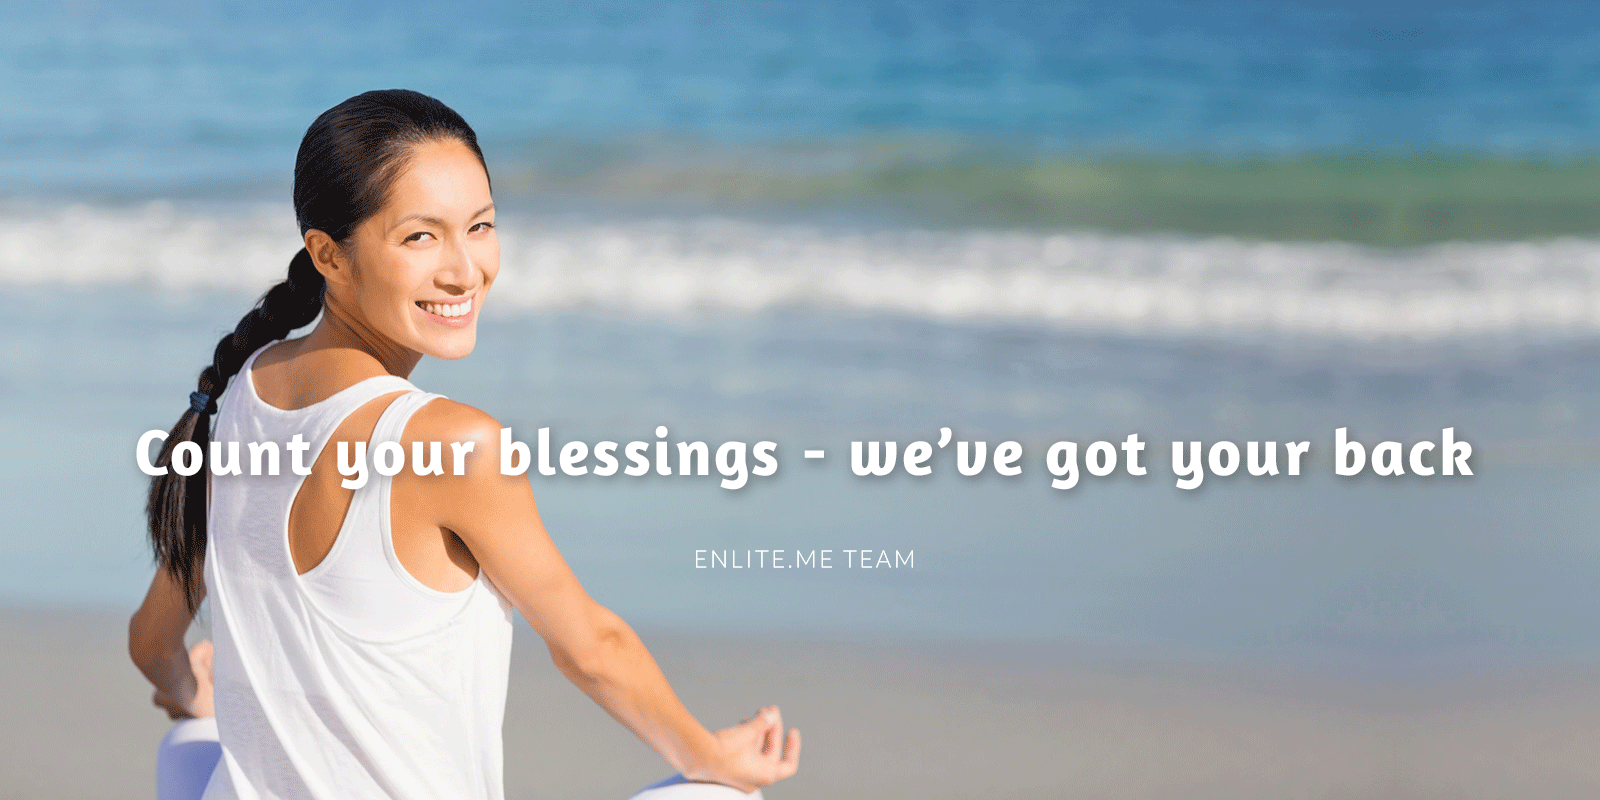 Count your blessings - we've got your back